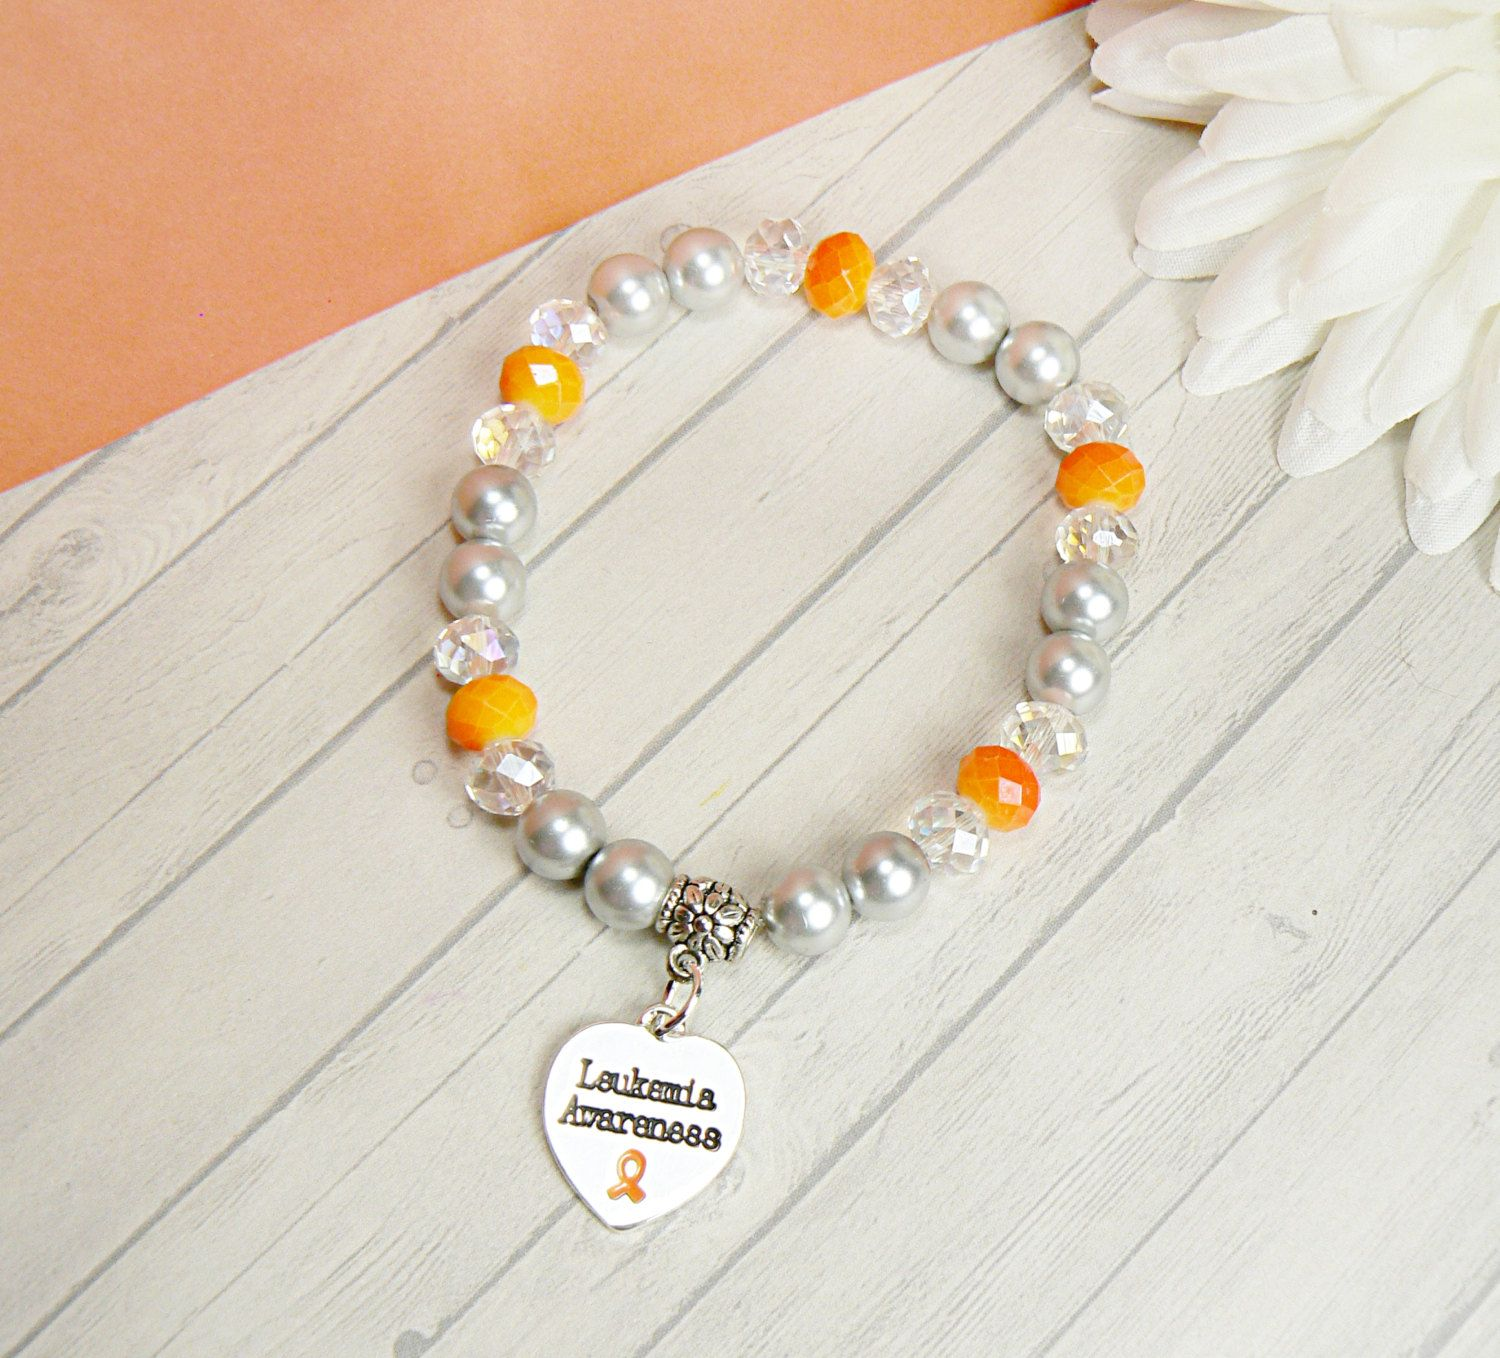 awareness bracelet pin my cookies and cakes leukemia pinterest